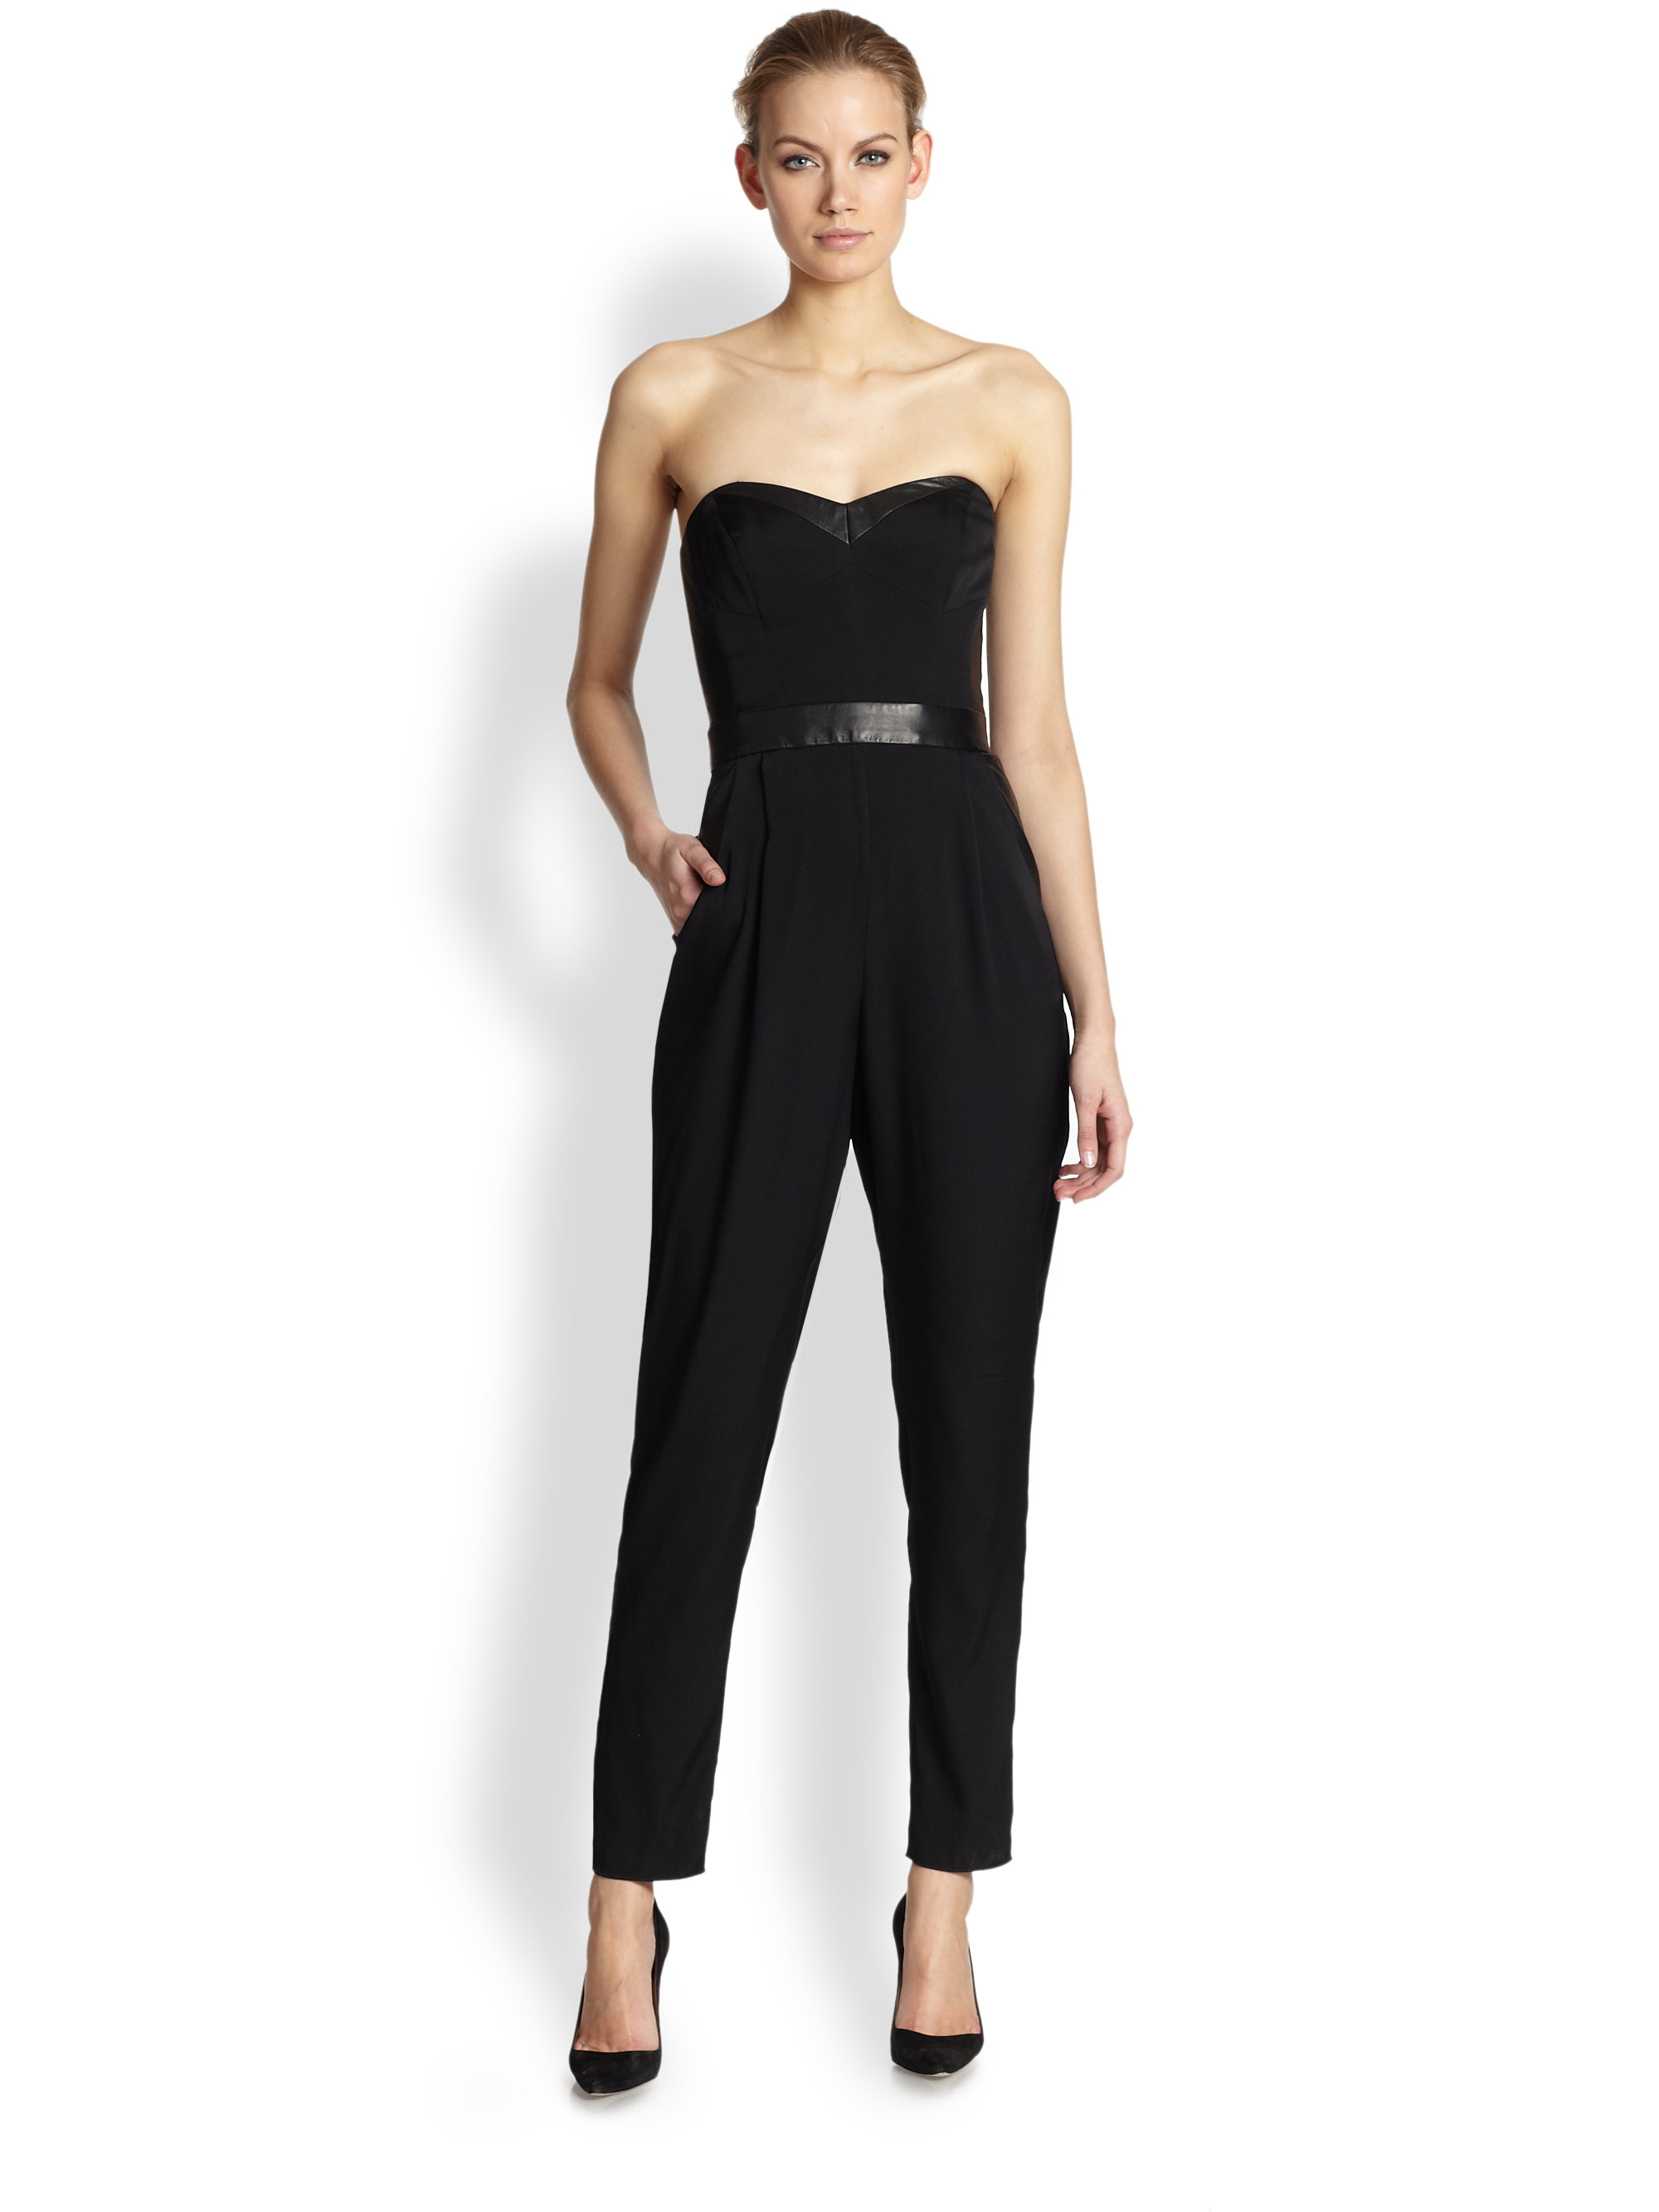 Blanc Free, fast shipping on Strapless Choker Velvet Black Jumpsuit at Dolls Kill, an online boutique for punk and rock fashion. Shop graphic tees, bodysuits, & dresses. Midnight Last Danze Velvet Jumpsuit cuz you only save the best for last. This black velvet jumpsuit has a plunging neckline and matching choker.